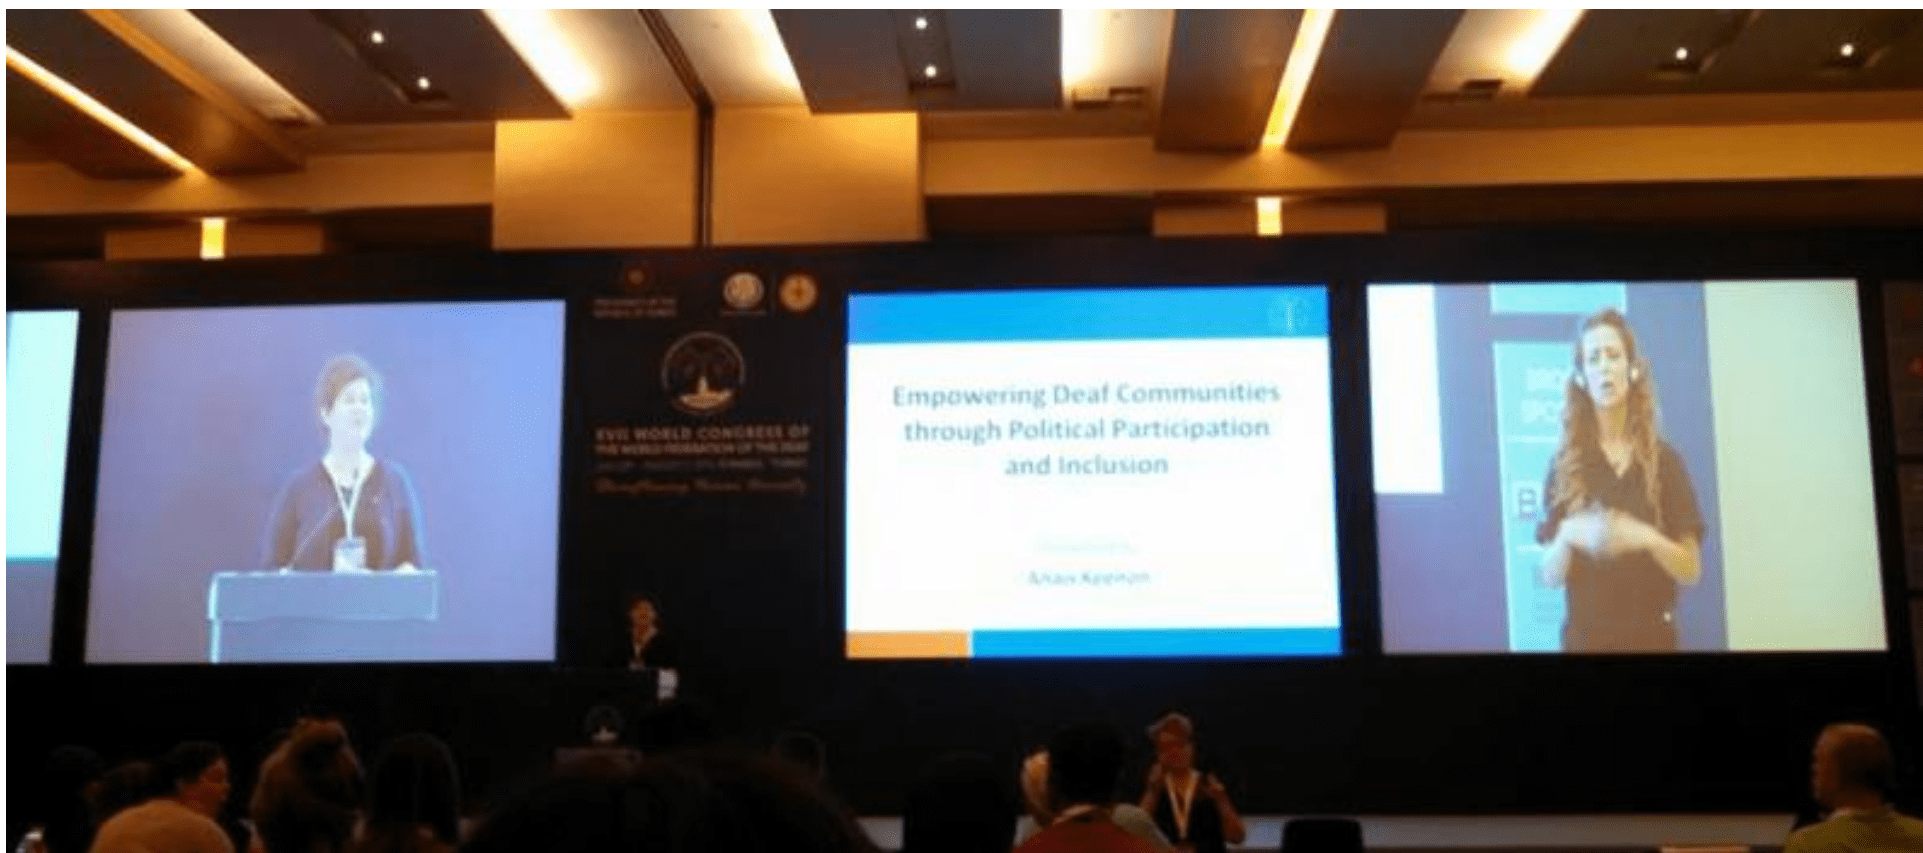 "This photo shows three screens at the front of a conference room. The screen at left shows Anais Keenon presenting. The middle screen shows a power point slide with the presentation title ""Empowering Deaf Communities through Political Participation and Inclusion"". The right screen shows an interpreter."